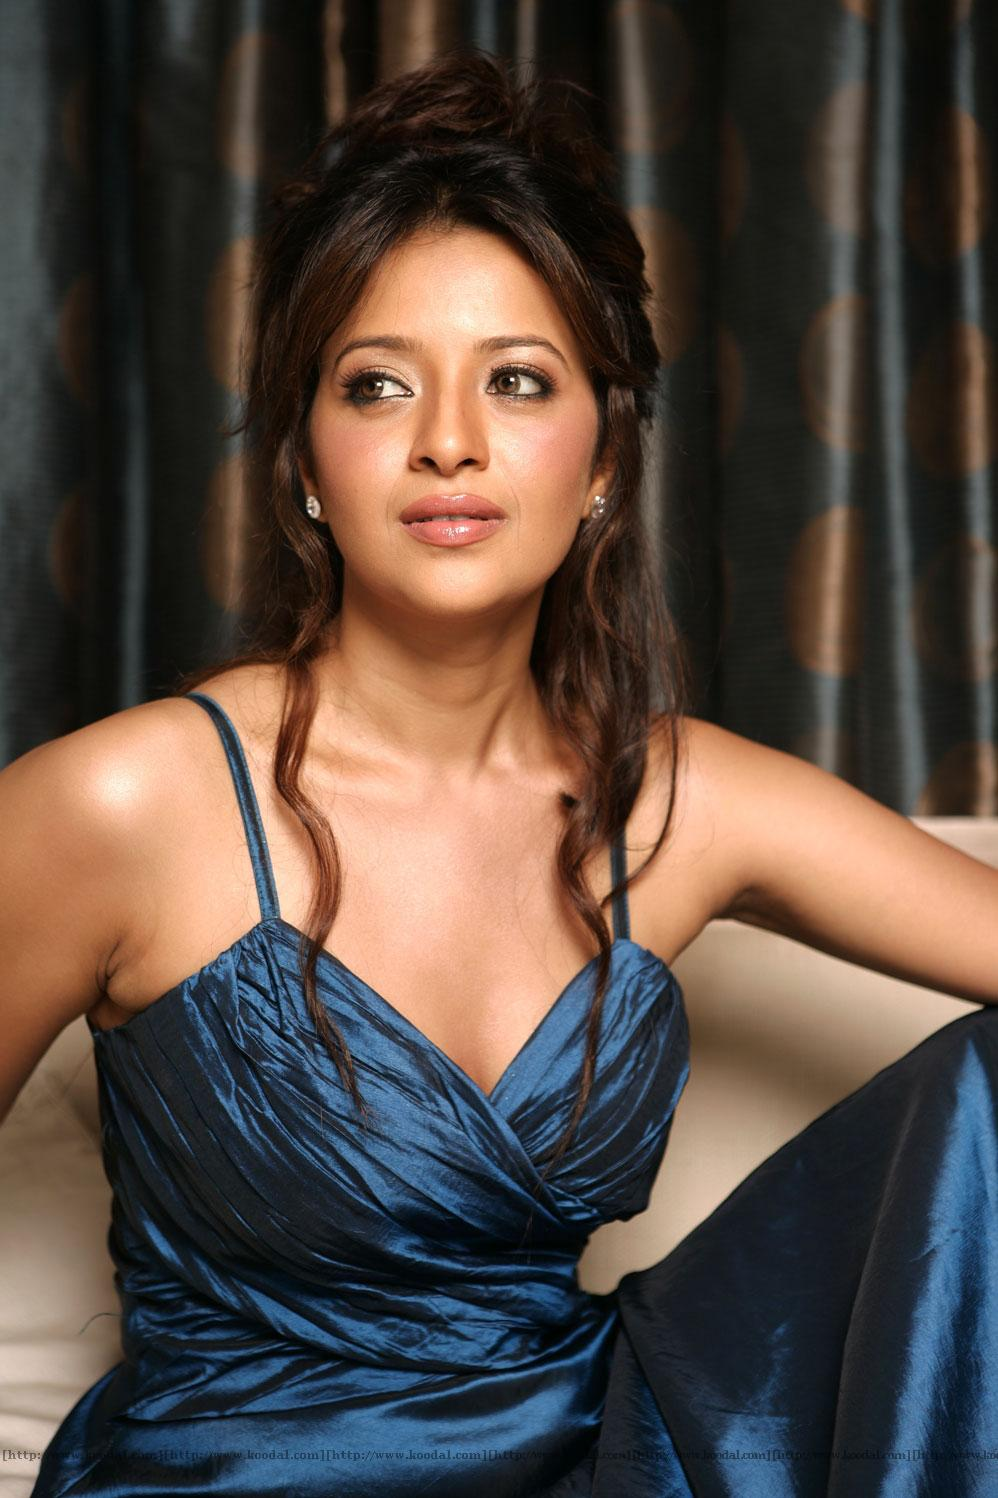 reema-sen-hot-spicy-image